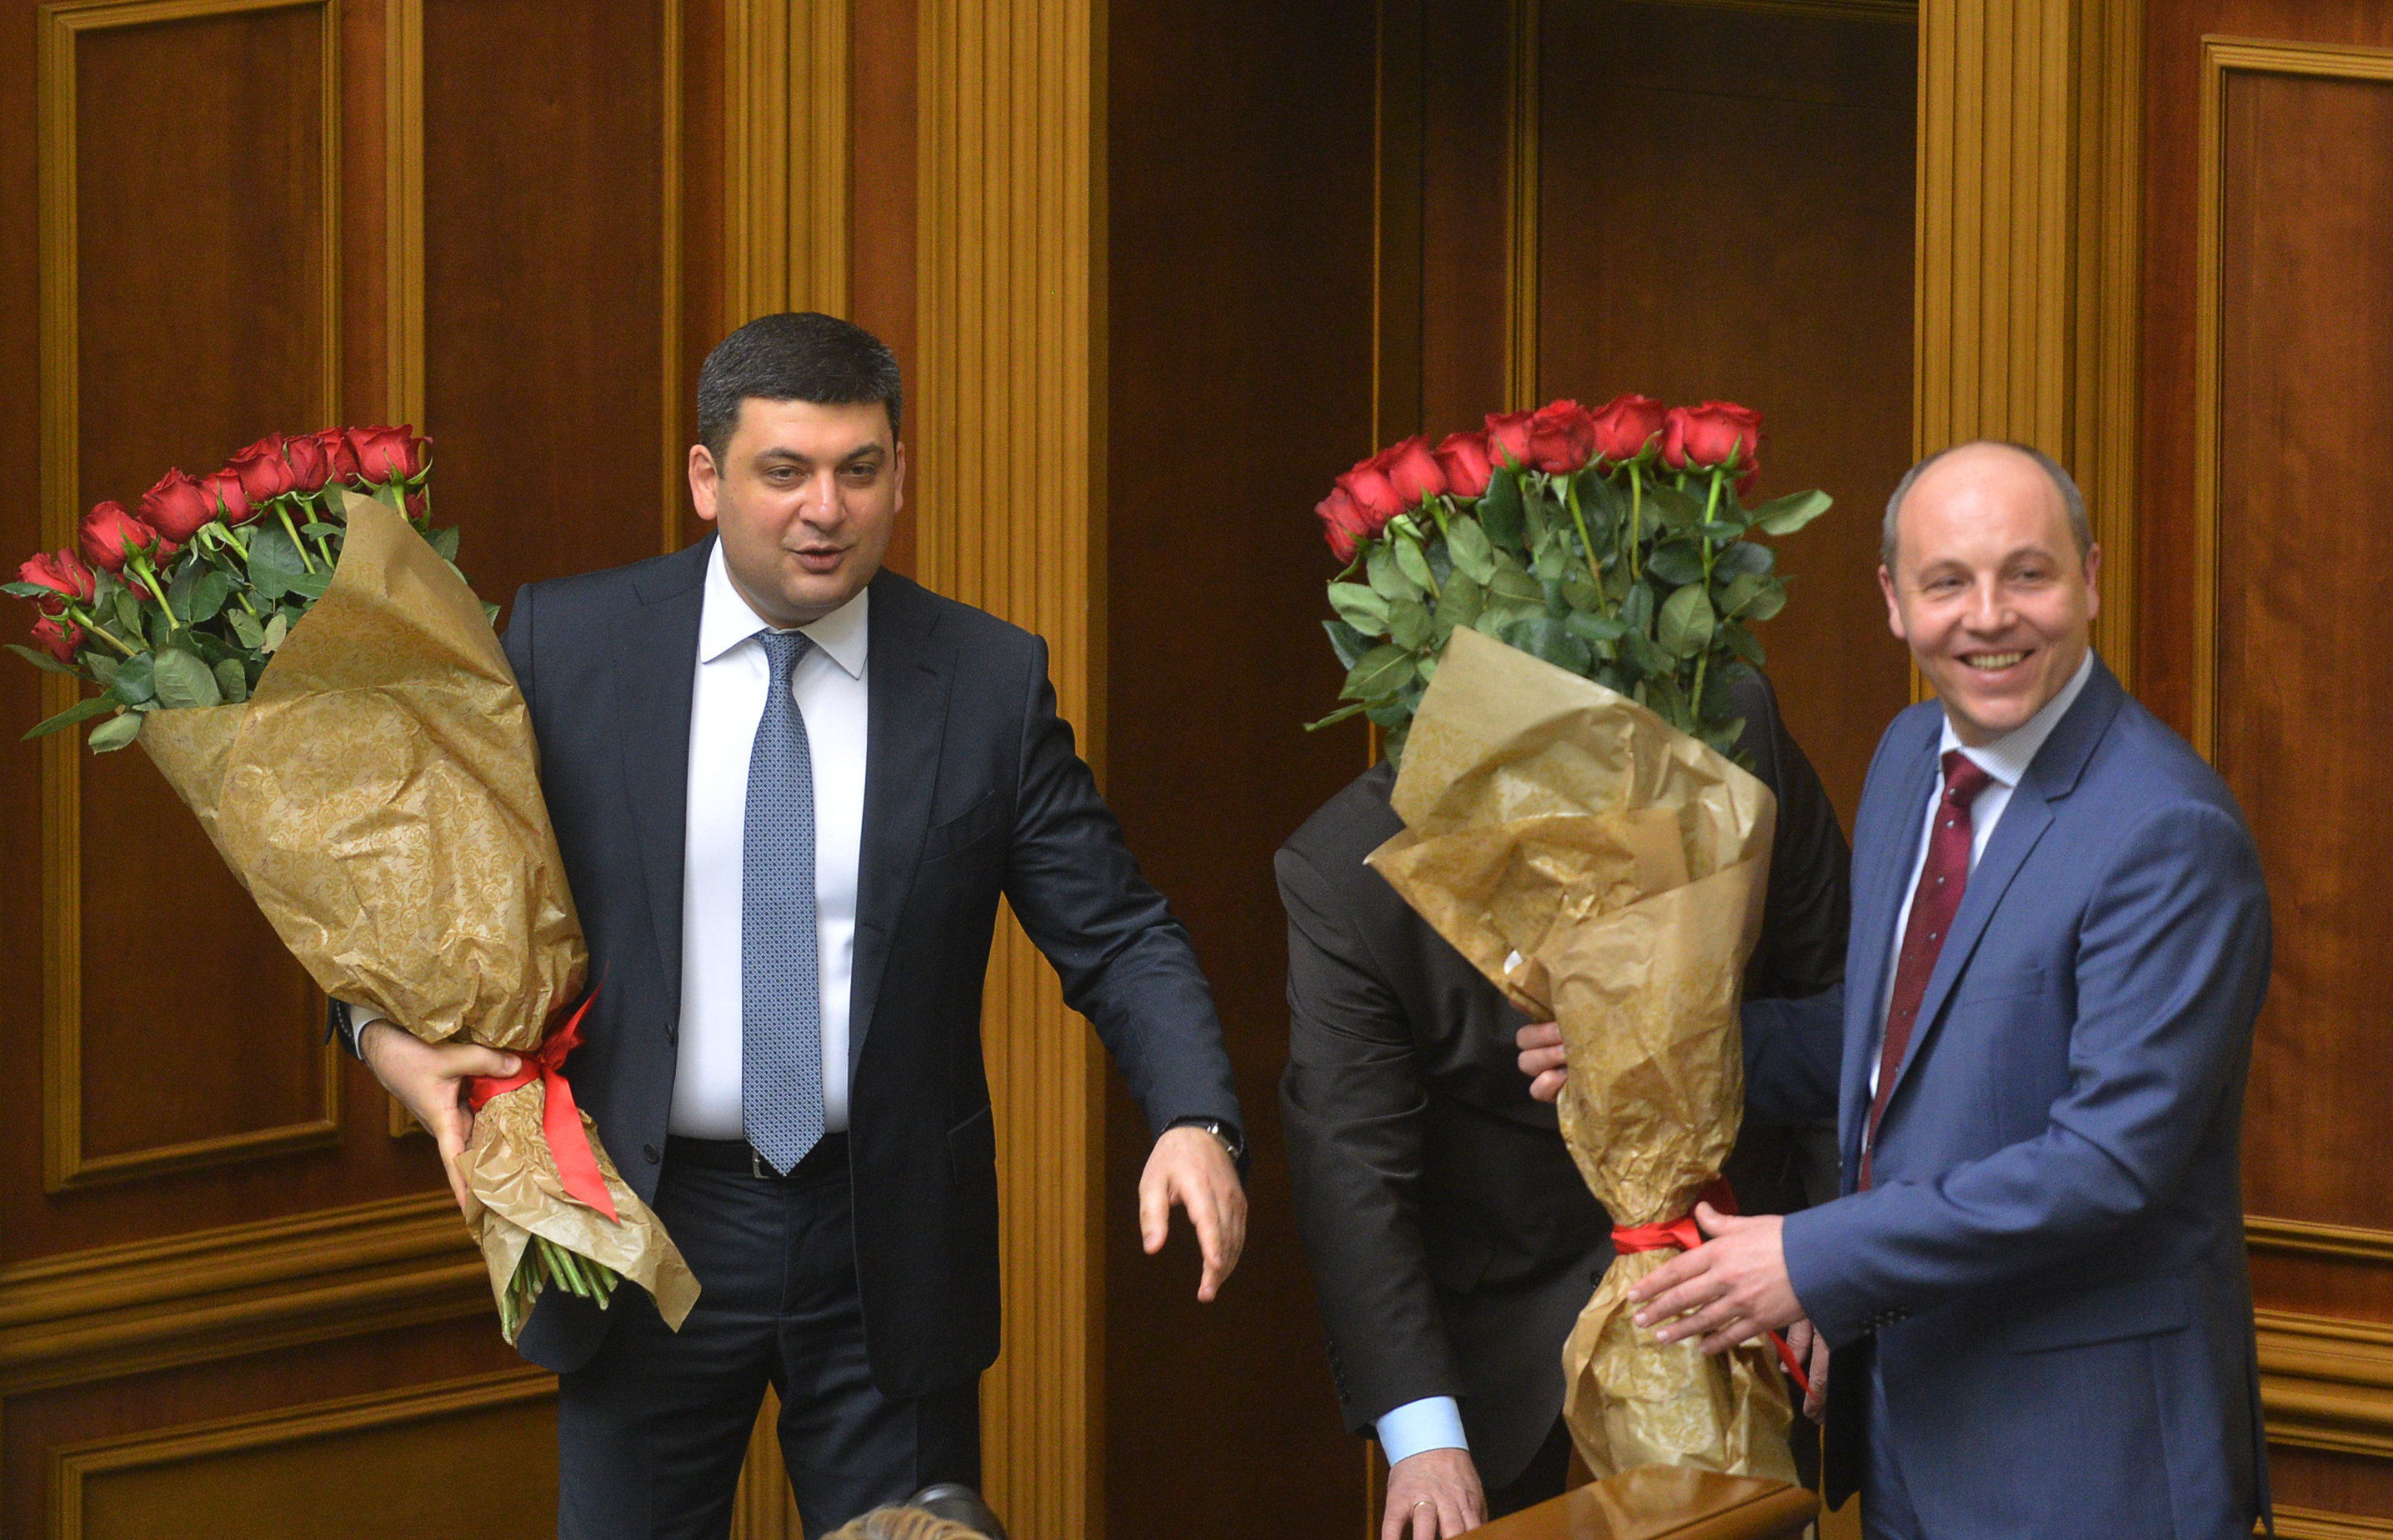 Ukrainian Prime Minister Volodymyr Groysman (L) and Andriy Parubiy, chair of the Ukrainian Parliament, hold bouquets of red roses during a parliamentary session in Kiev on April 14, 2016